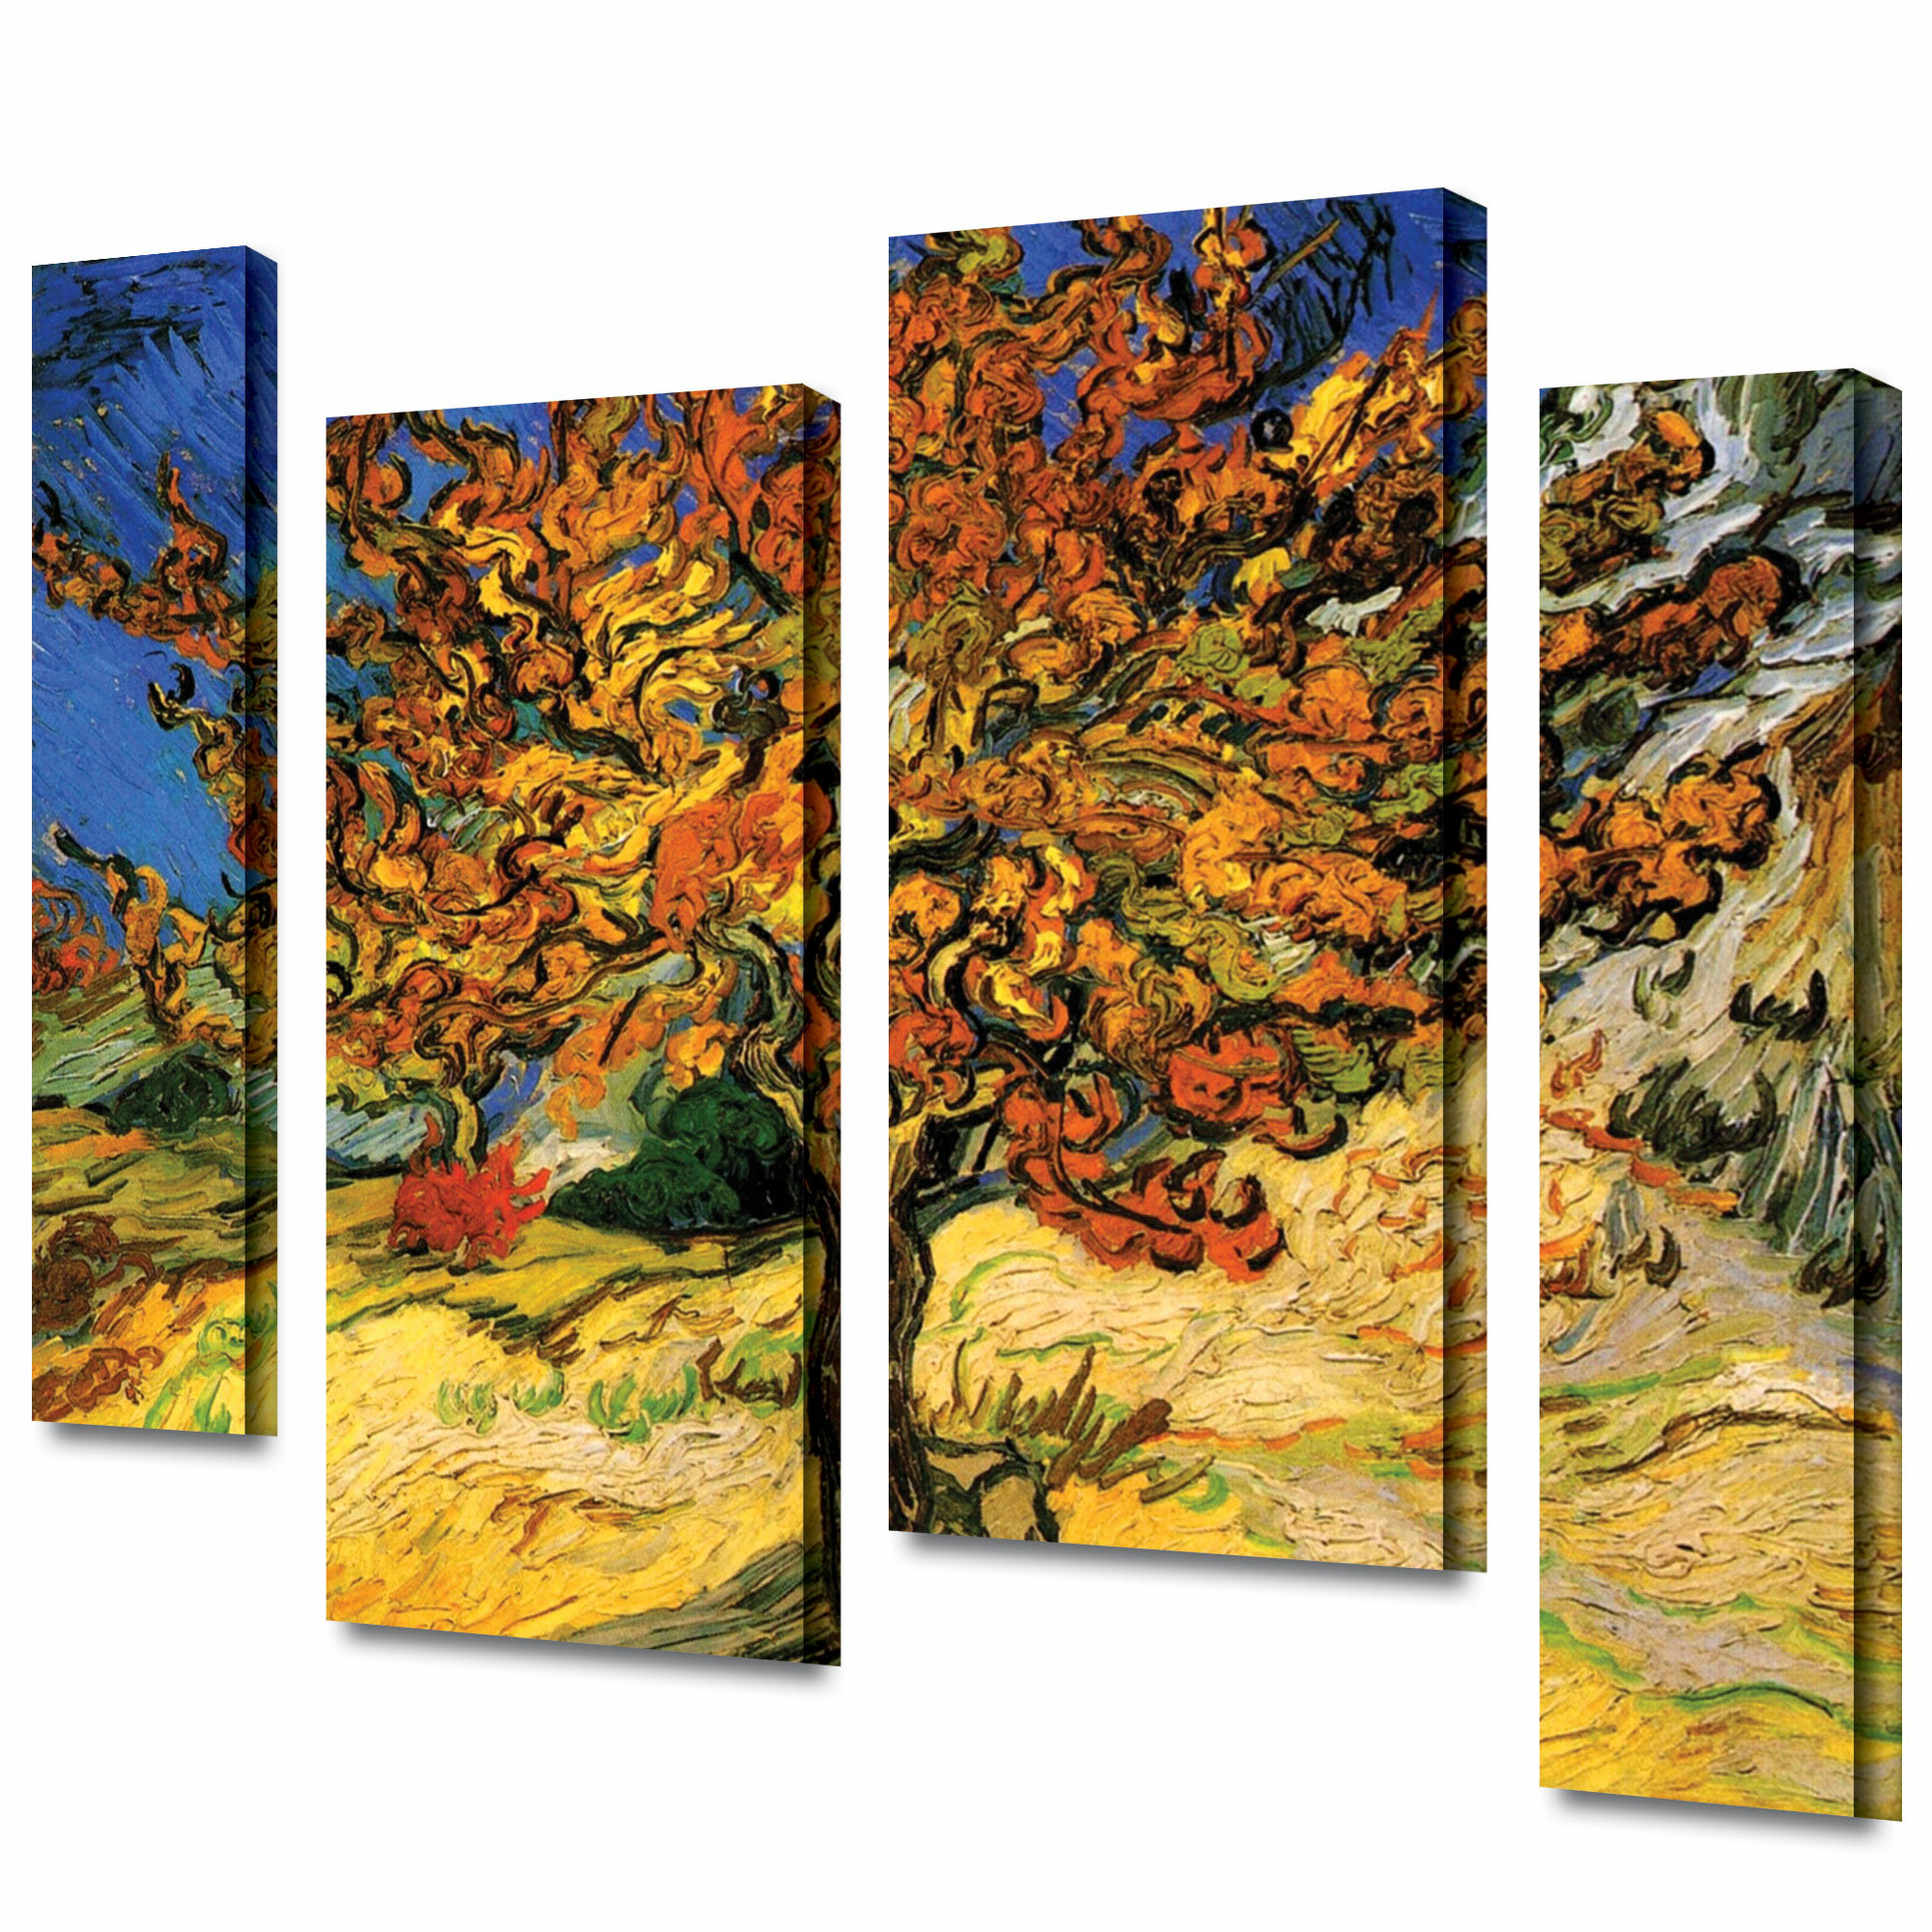 Popular Blended Fabric The Mulberry Tree – Van Gogh Wall Hangings Throughout 'mulberry Tree'vincent Van Gogh 4 Piece Painting Print On Wrapped Canvas Set (View 12 of 20)